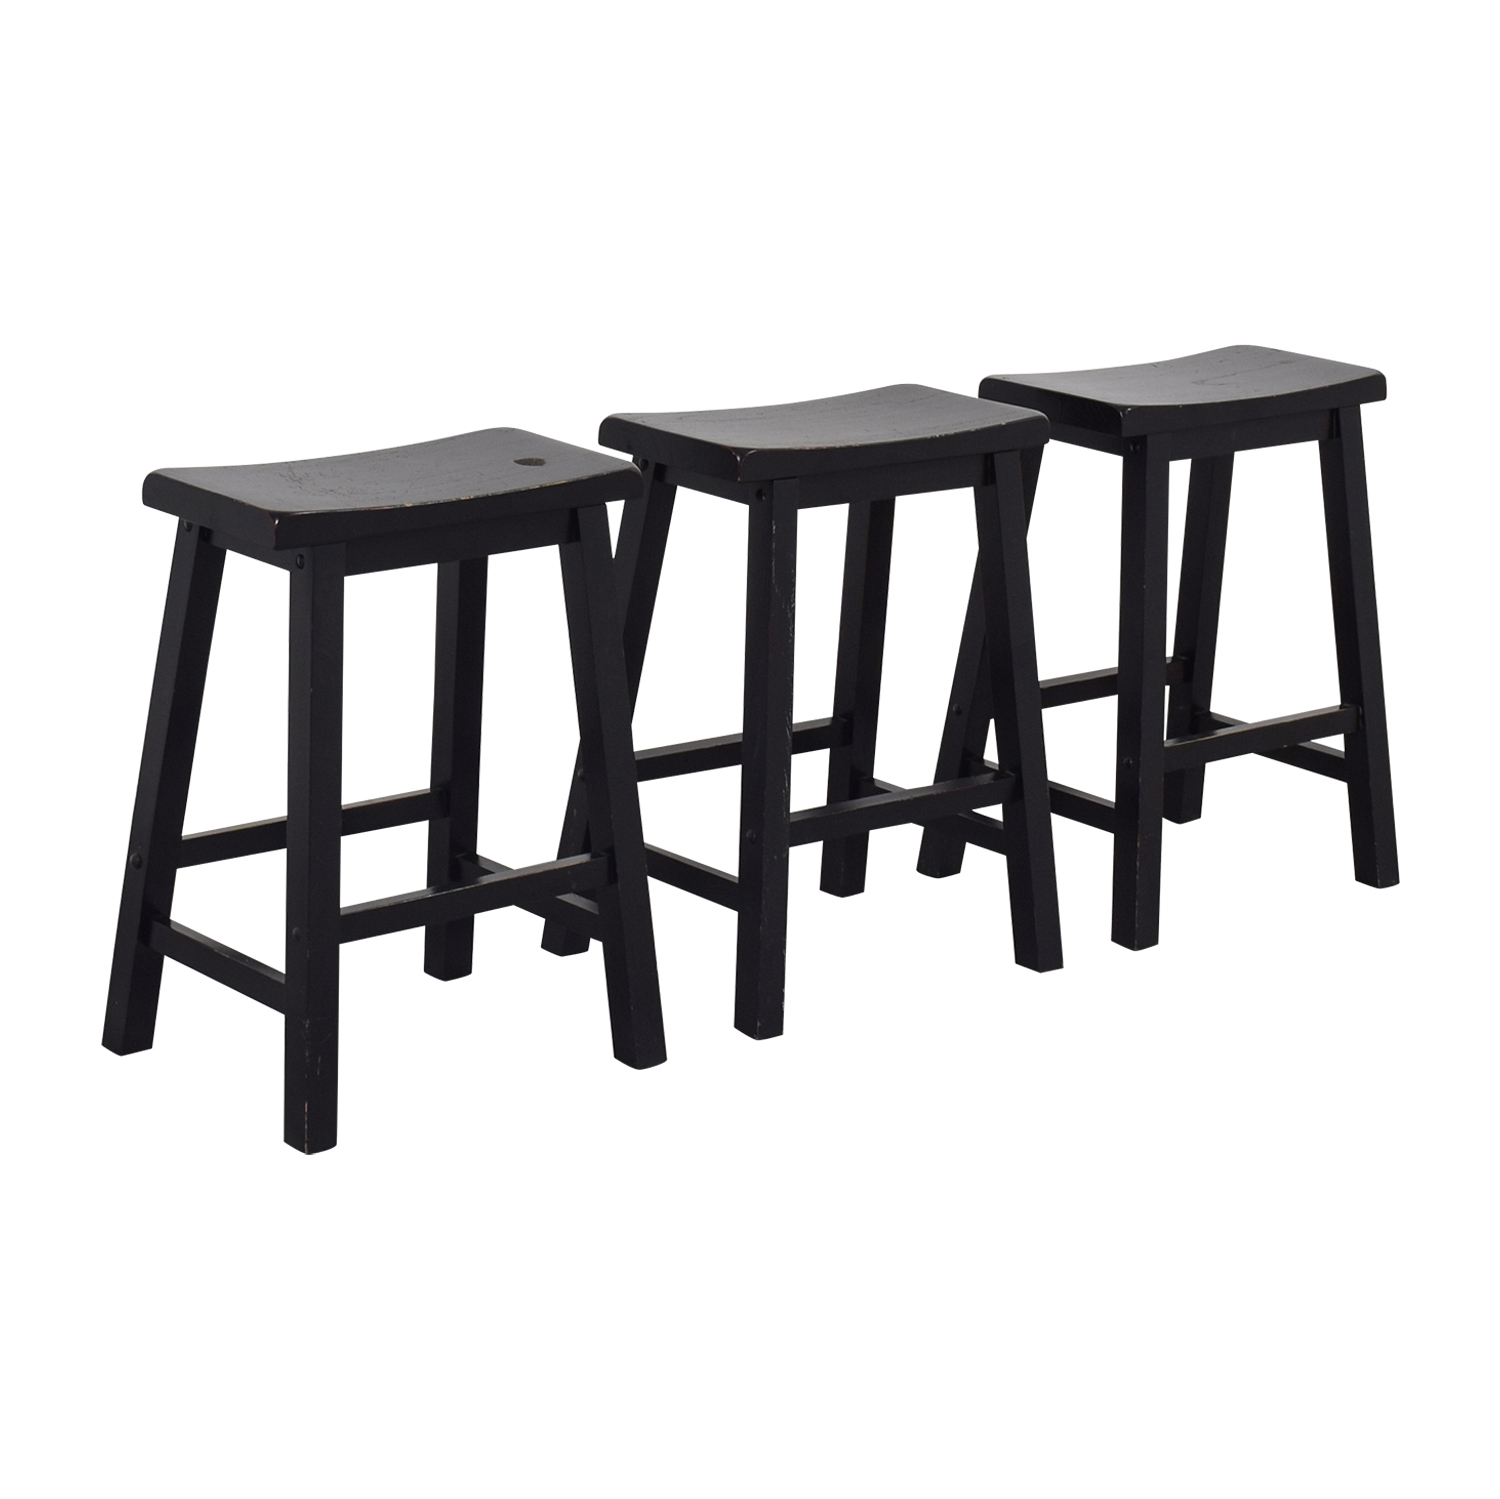 West Elm West Elm Black Solid Wood Stools Stools